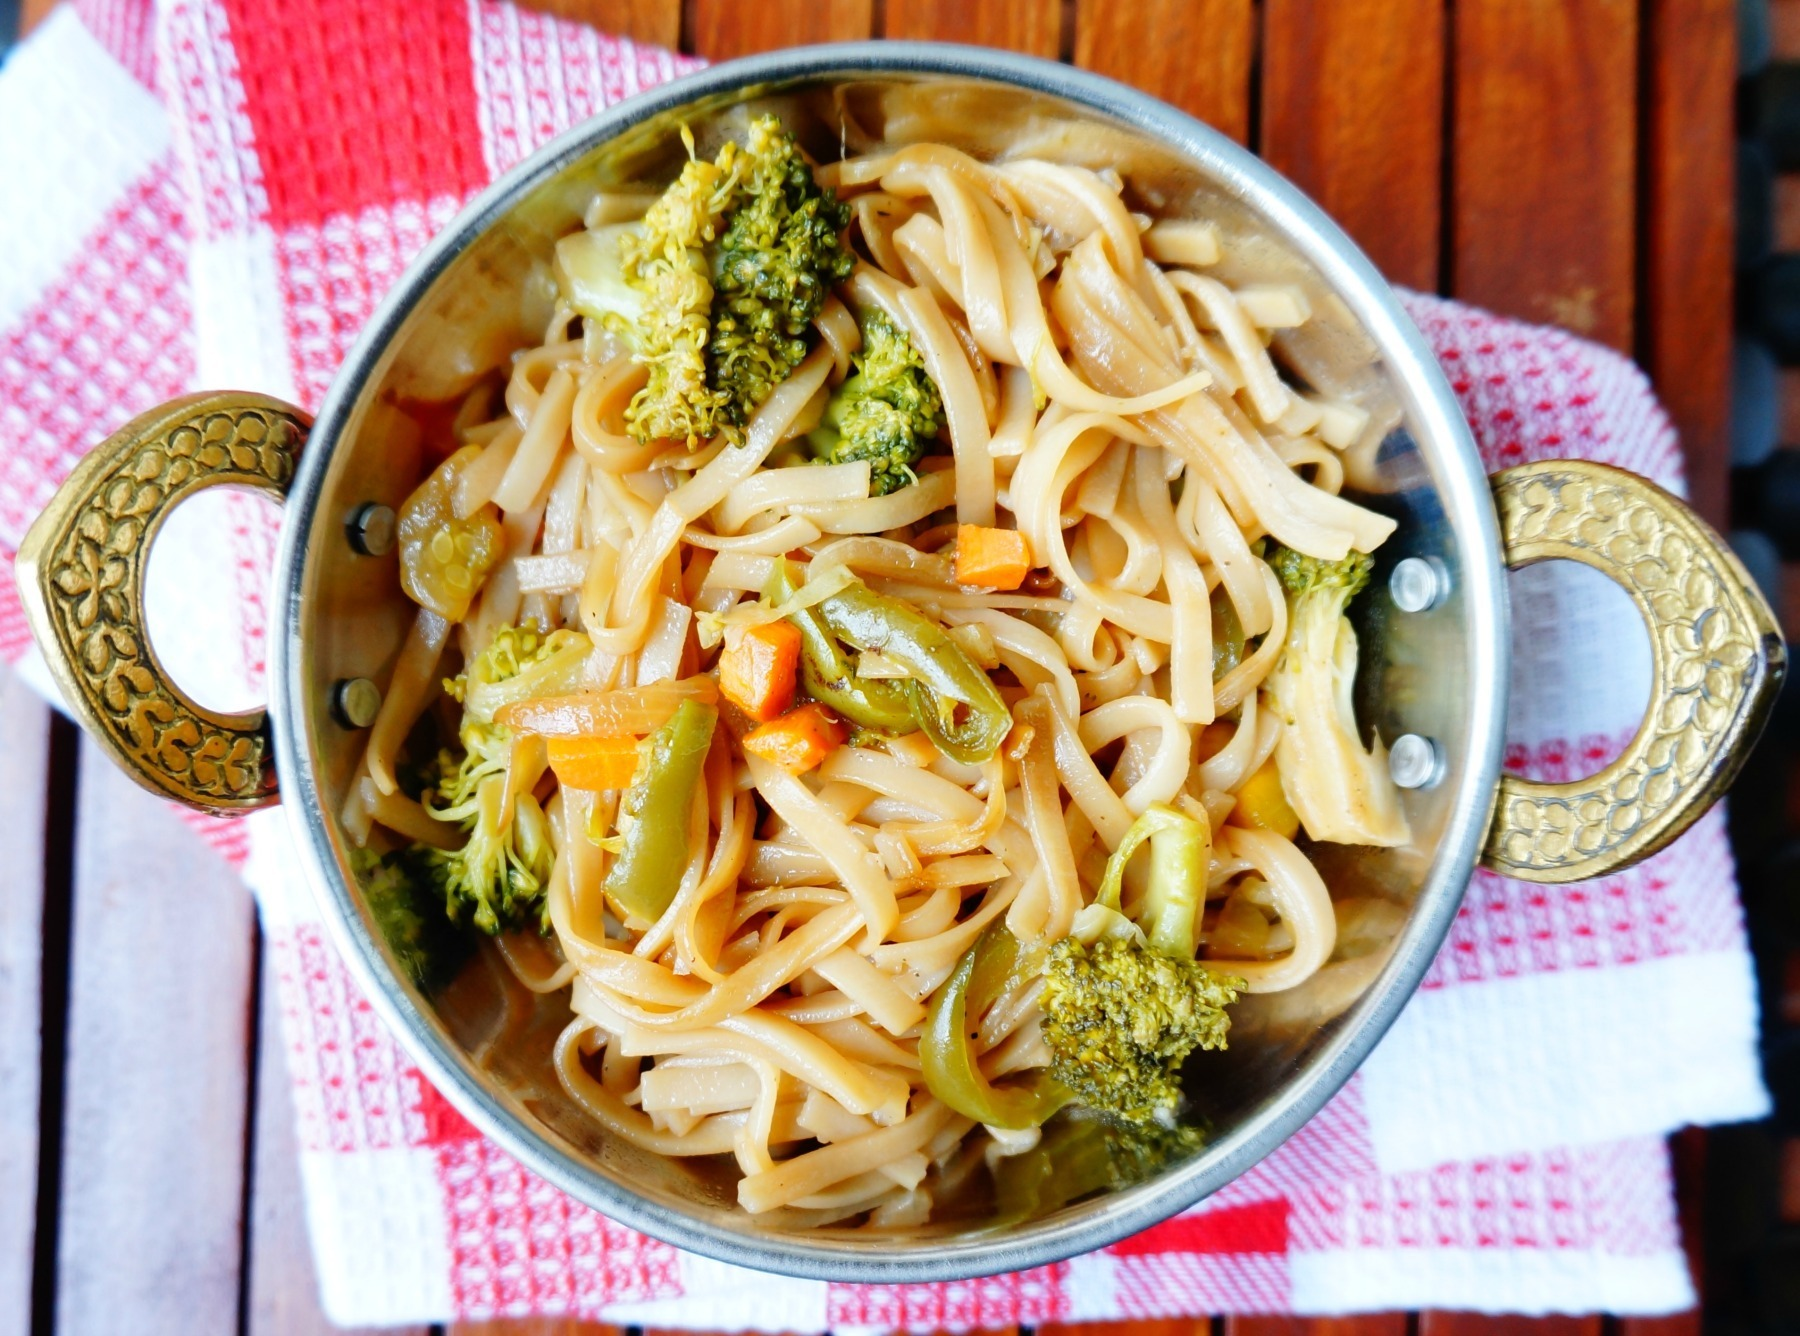 Recipe of Chinese style Rice broccoli noodles